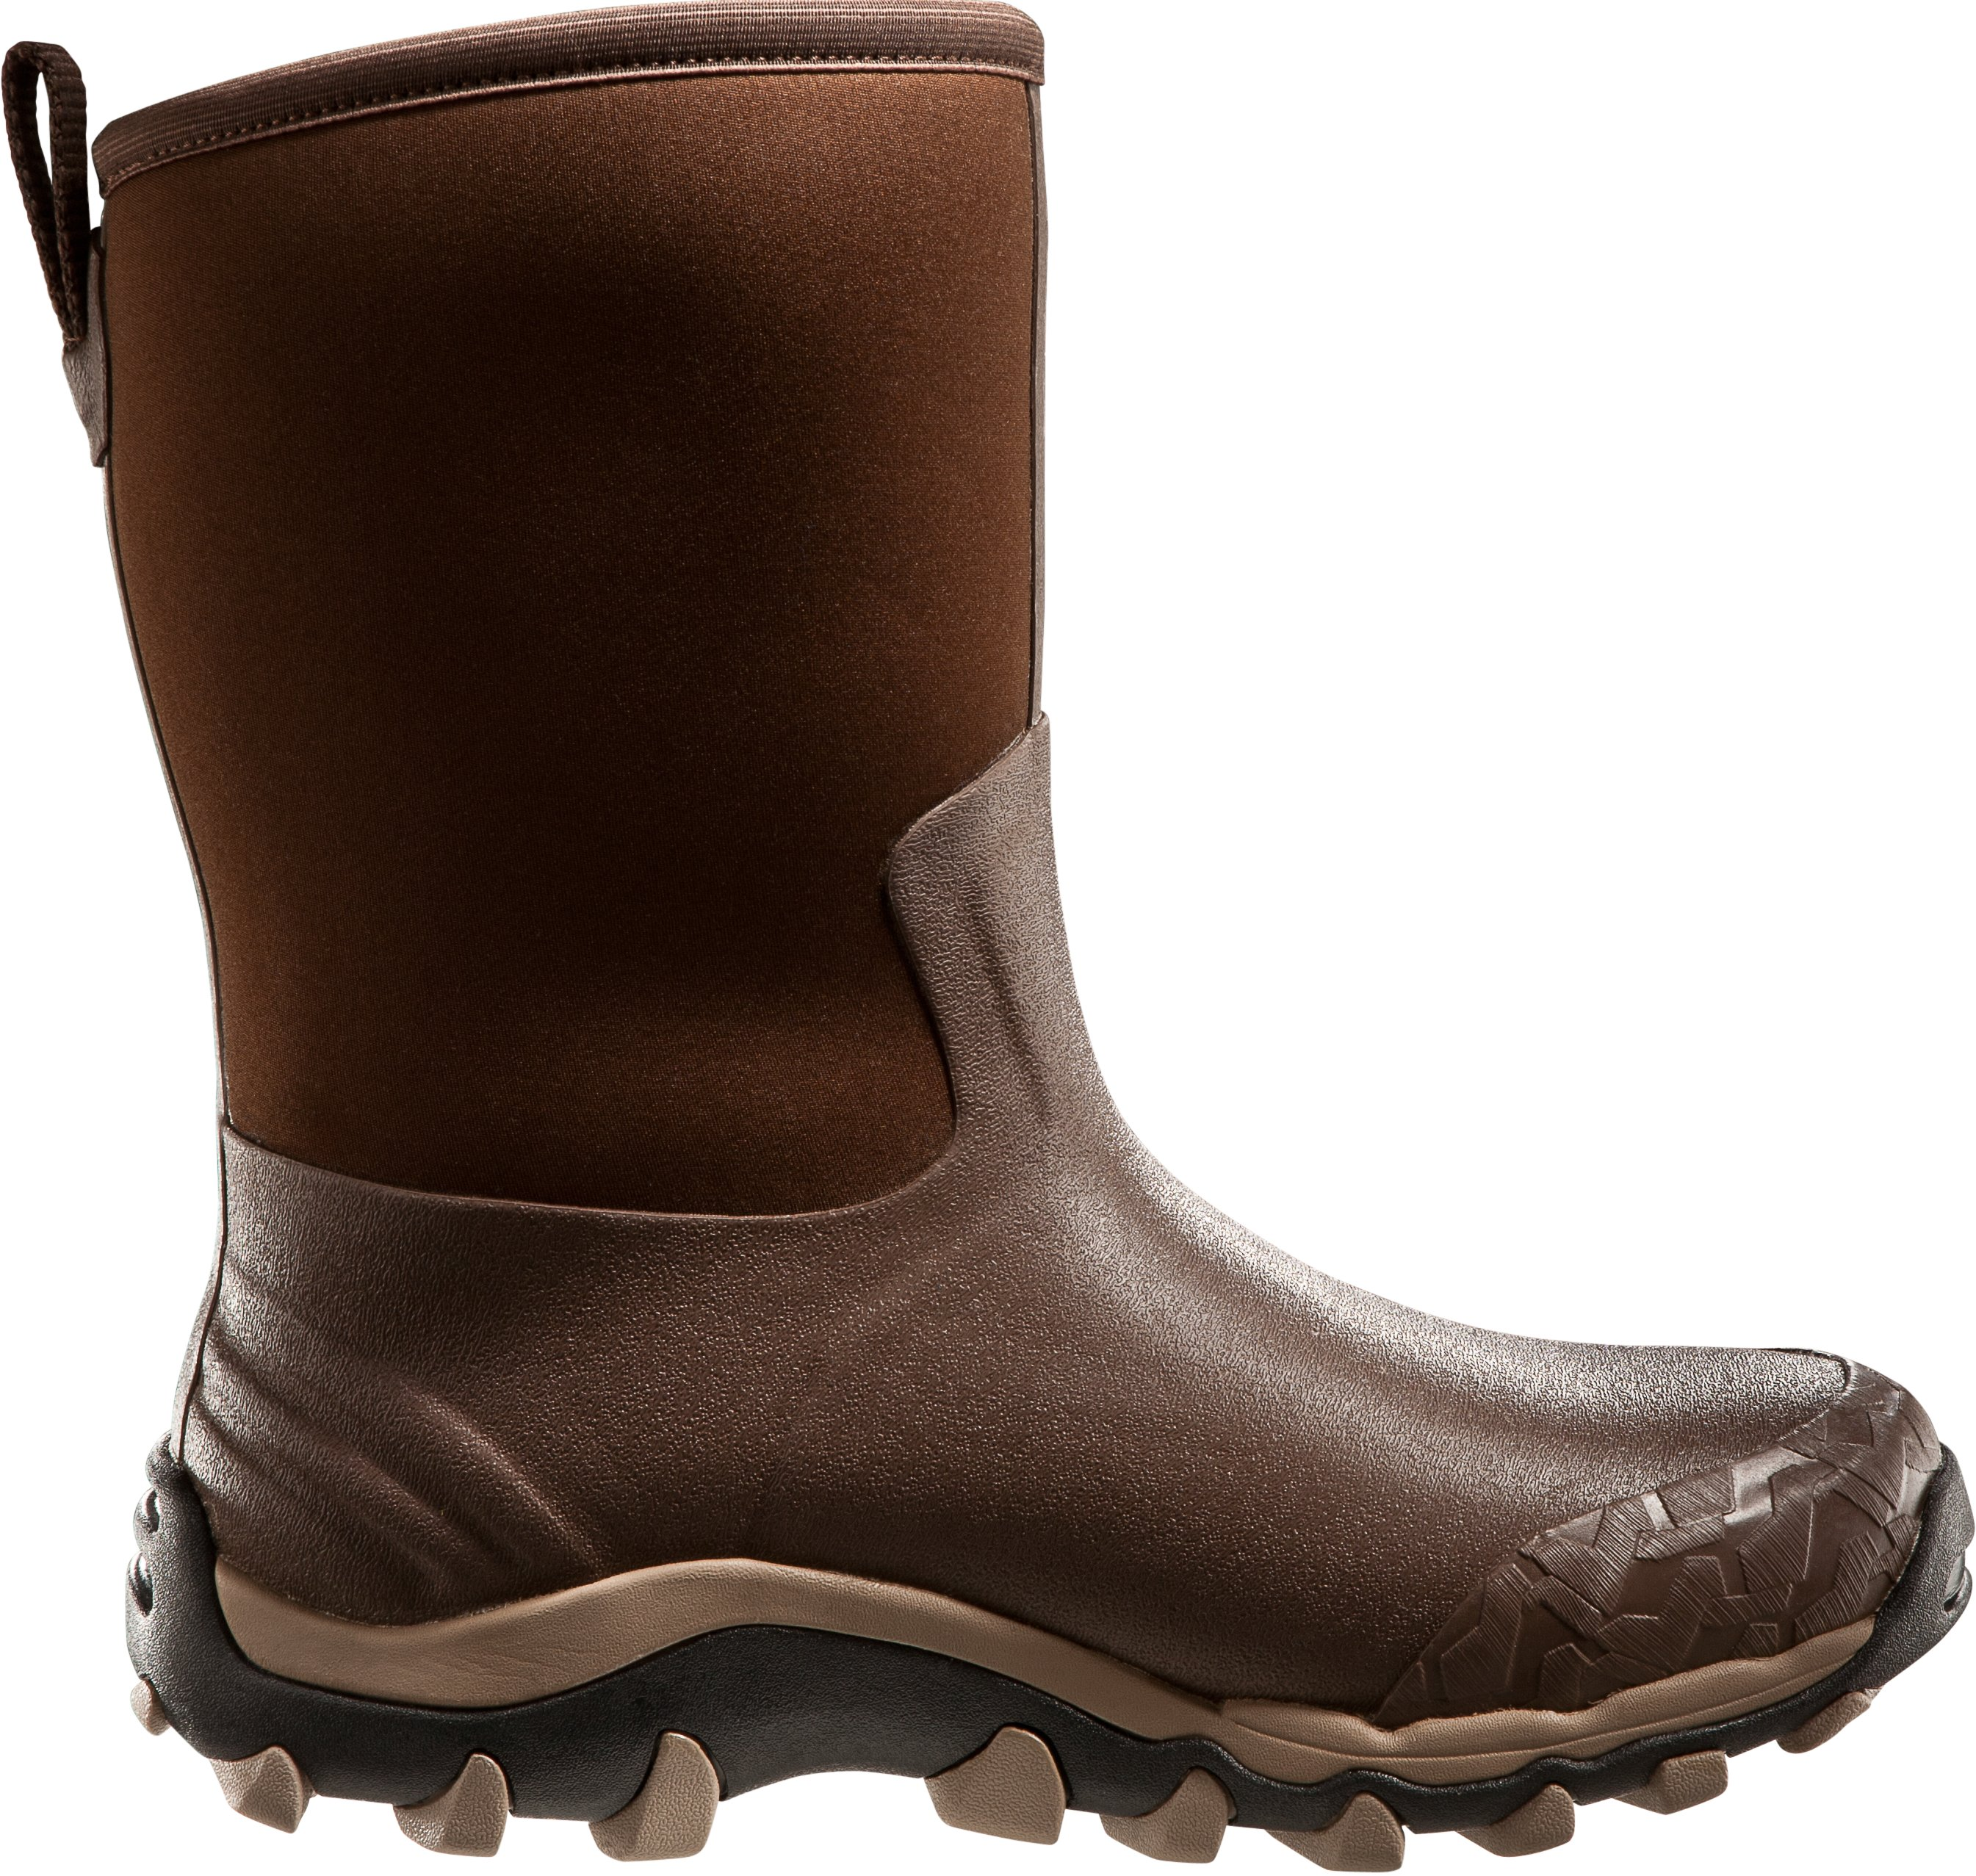 Men's UA H.A.W. Shorty Hunting Boots, Timber